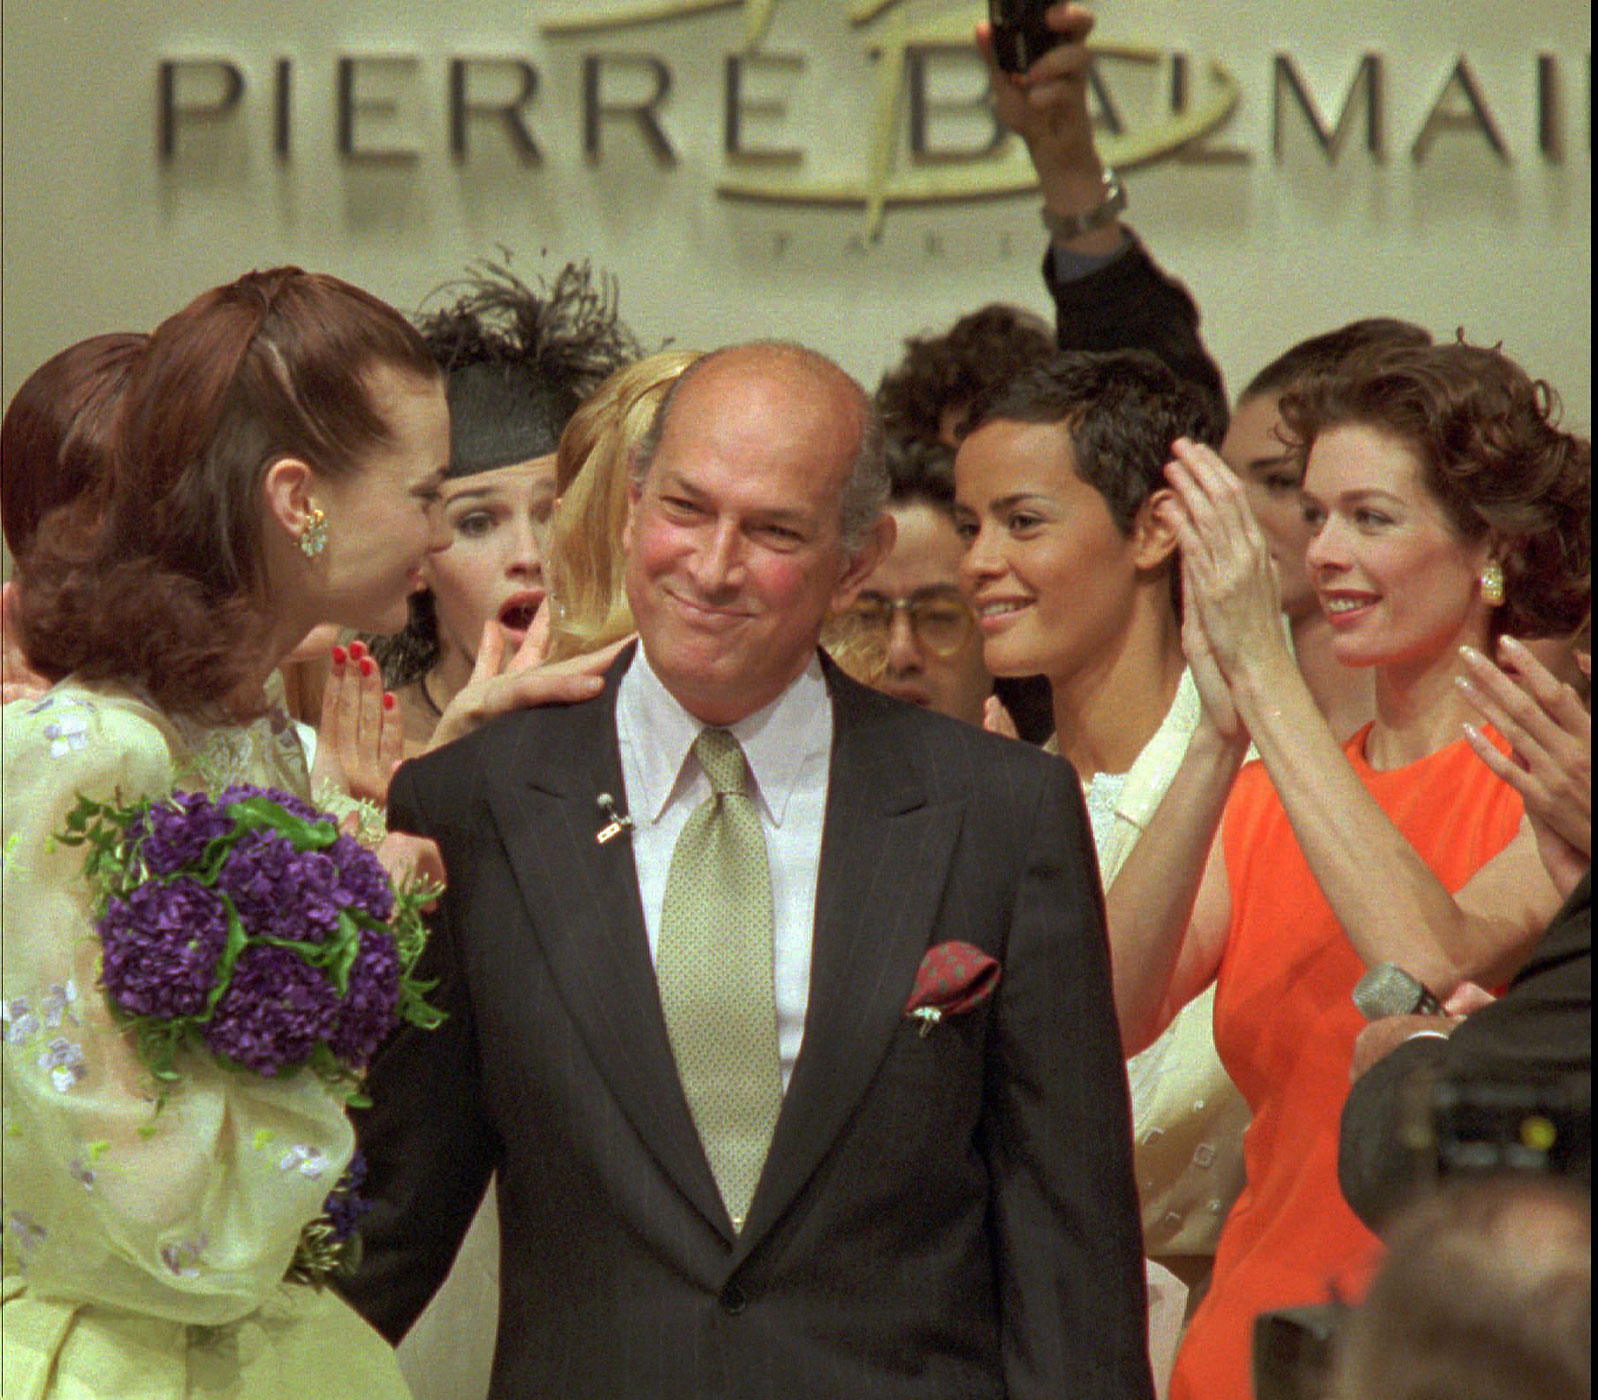 Oscar de la Renta is cheered by models at the end of the Pierre Balmain 1996 Spring-Summer haute couture show in Paris on Jan 24, 1996.